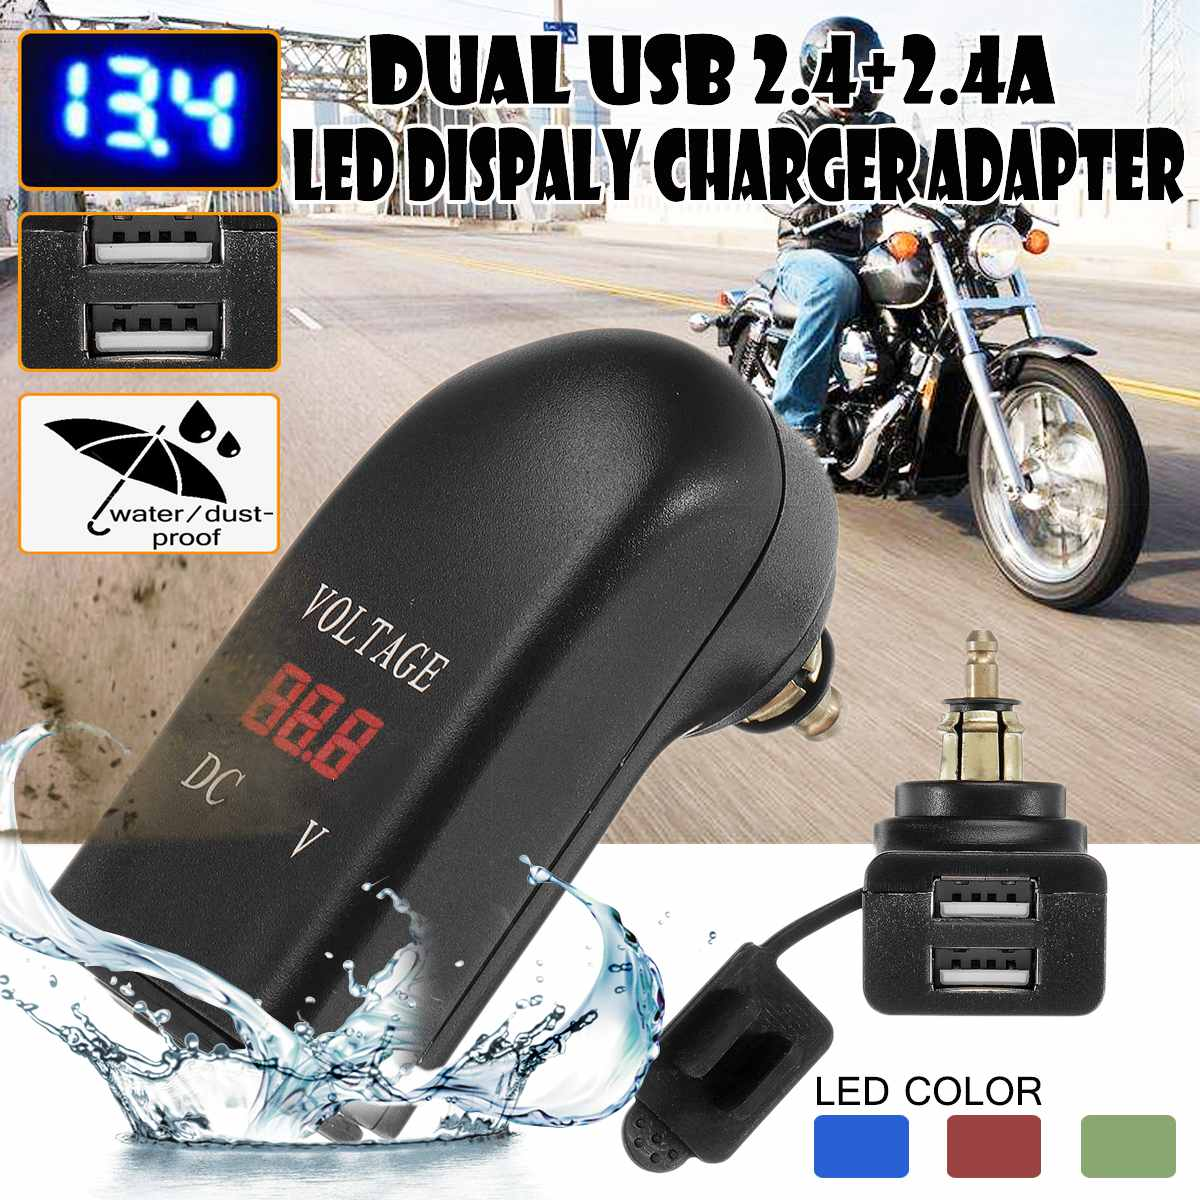 Motorcycle Din <font><b>Charger</b></font> 12-24V 4.8A Dual <font><b>USB</b></font> <font><b>Charger</b></font> Adapter LED EU Plug For <font><b>BMW</b></font> Din Socket Hella Plug Motor Waterproof image